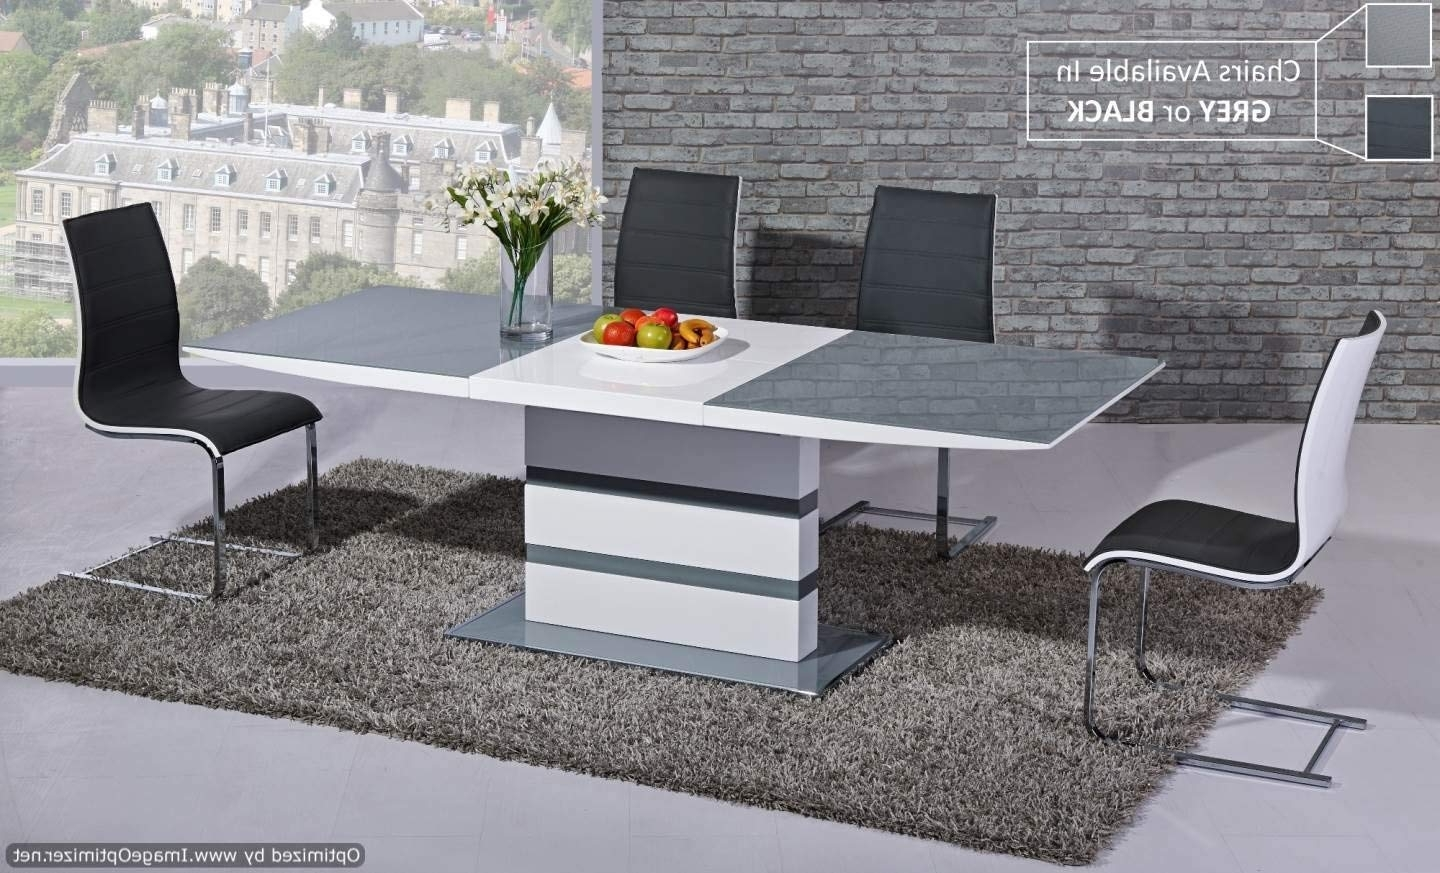 Widely Used Furniture Mill Outlet Arctic Extending Dining Table In Grey From Giatalia – Extending Function – Very Stylish & Contemporary Italian Dining Within Black Gloss Dining Tables And Chairs (View 16 of 25)